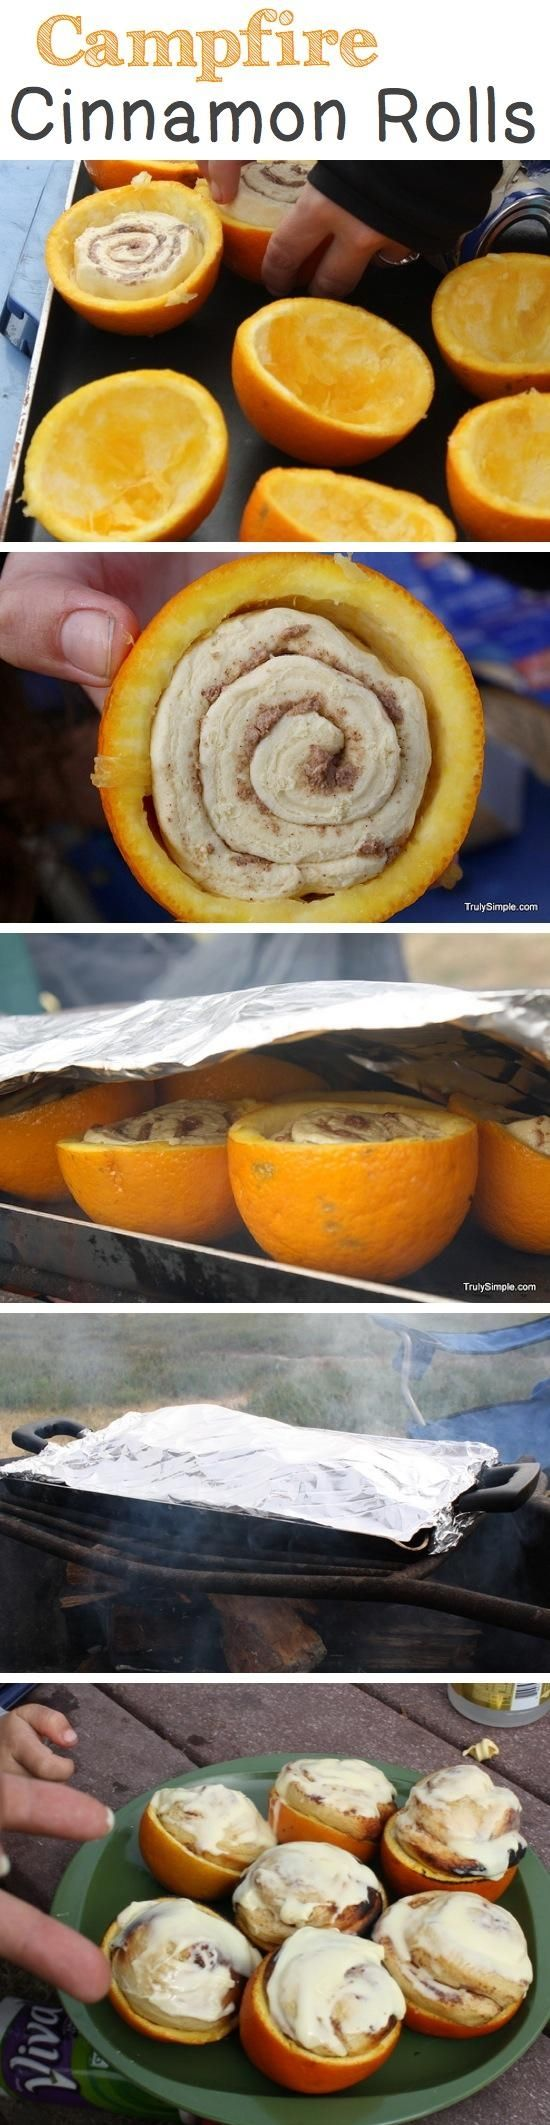 DIY Campfire Cinnamon Rolls by trulysimple via lovethispic #Cinnamon_Rolls #Orange #Camping